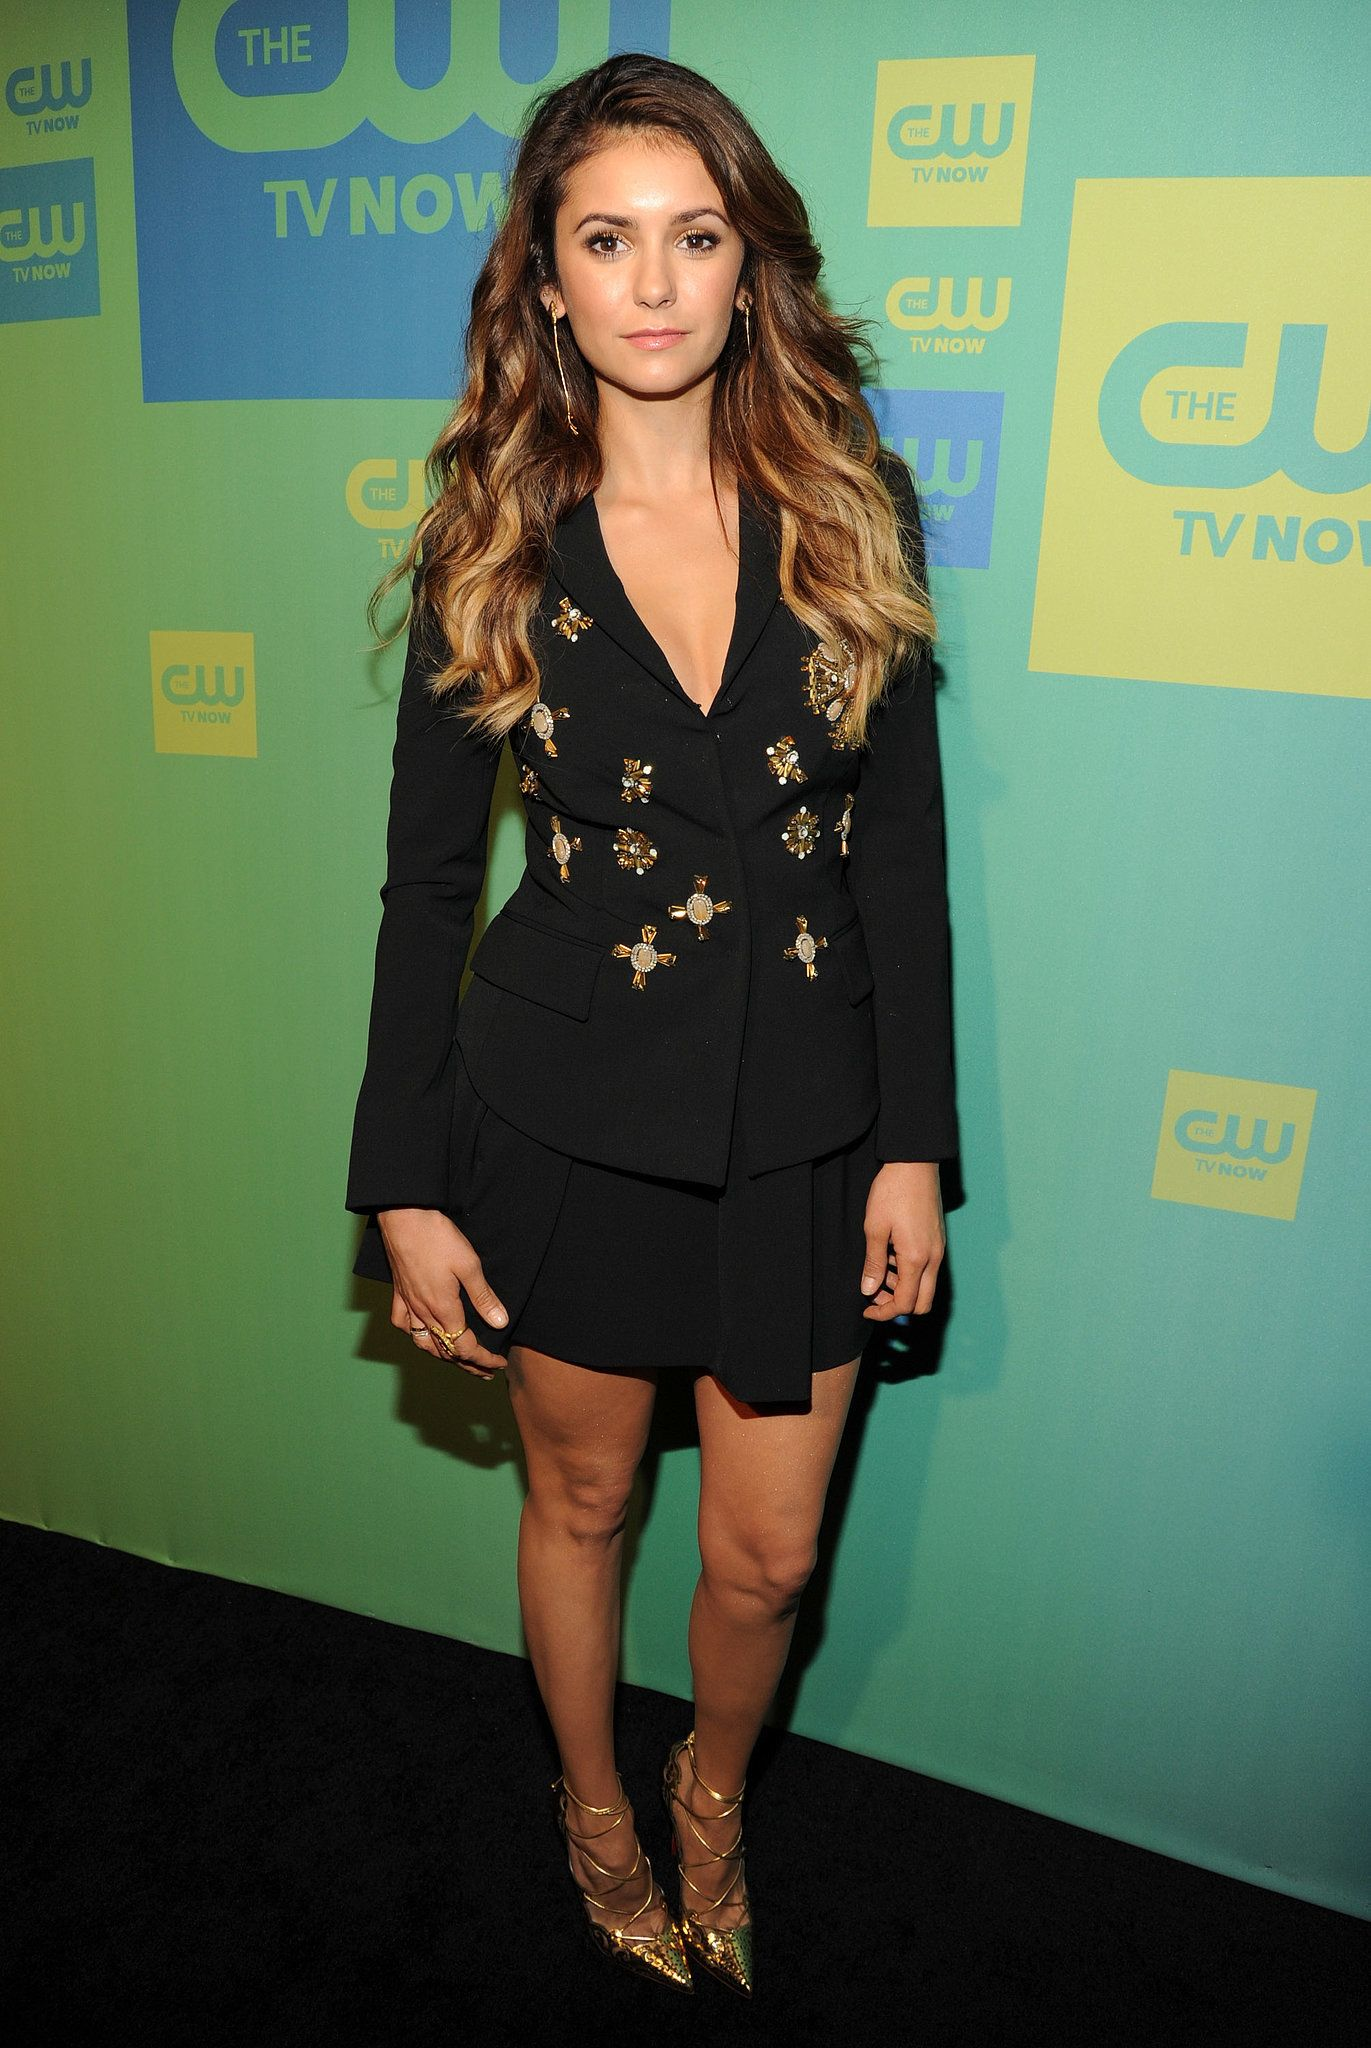 Nina dobrev at the cw upfronts in nyc celebrities pinterest